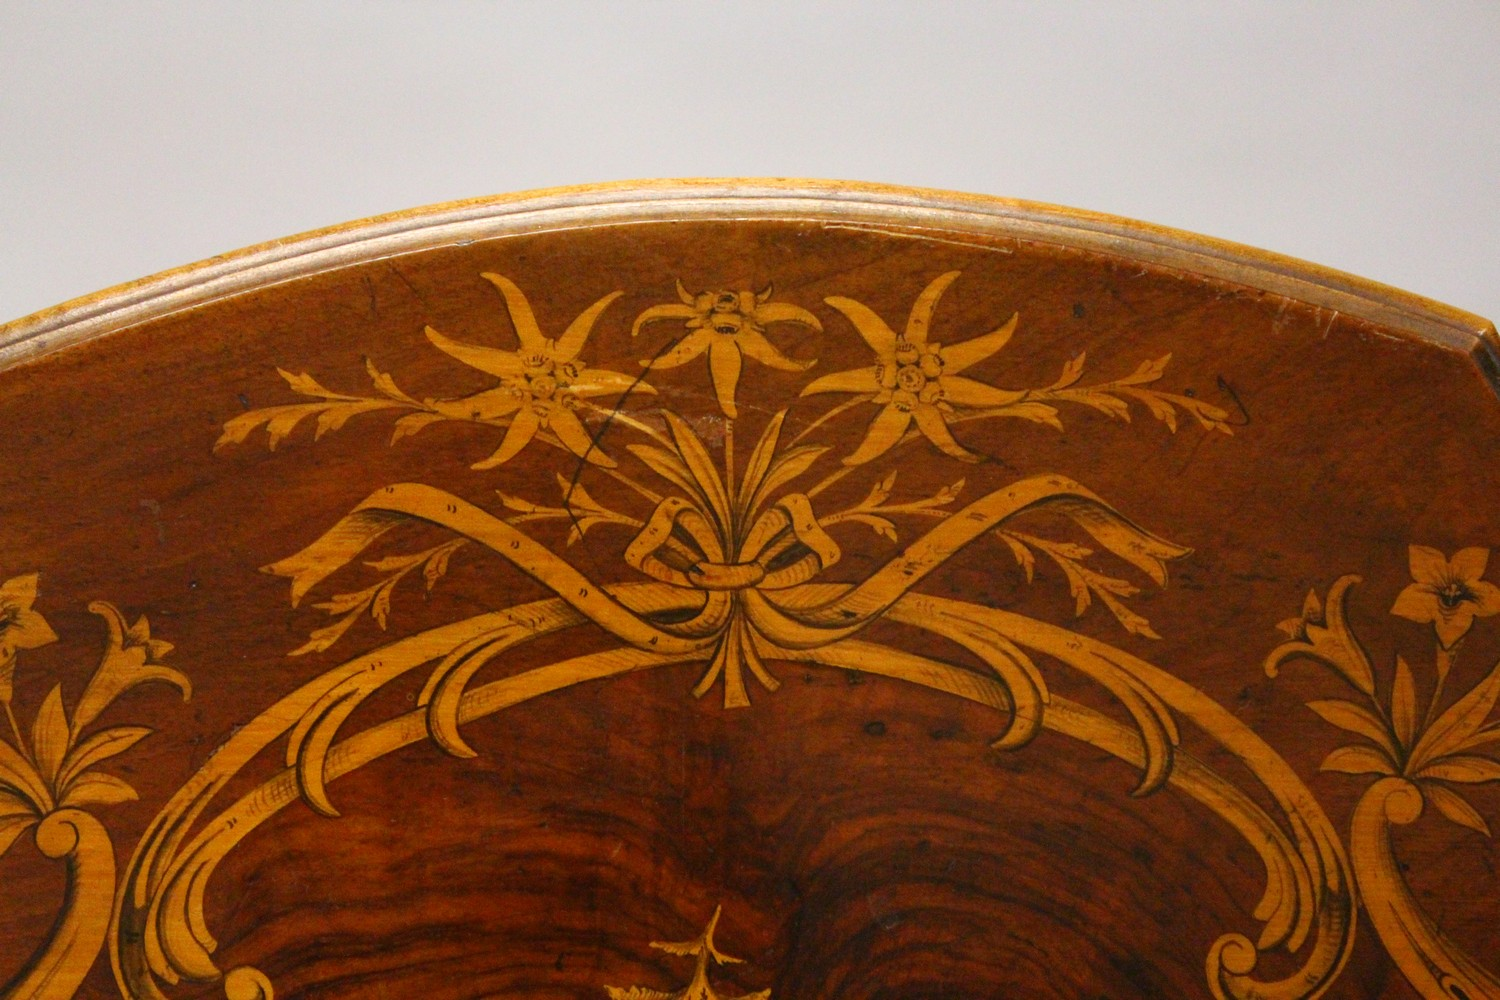 Lot 1002 - A LATE 19TH CENTURY BLACK FOREST INLAID TABLE. 2ft 1.5ins wide x 2ft 7ins high.